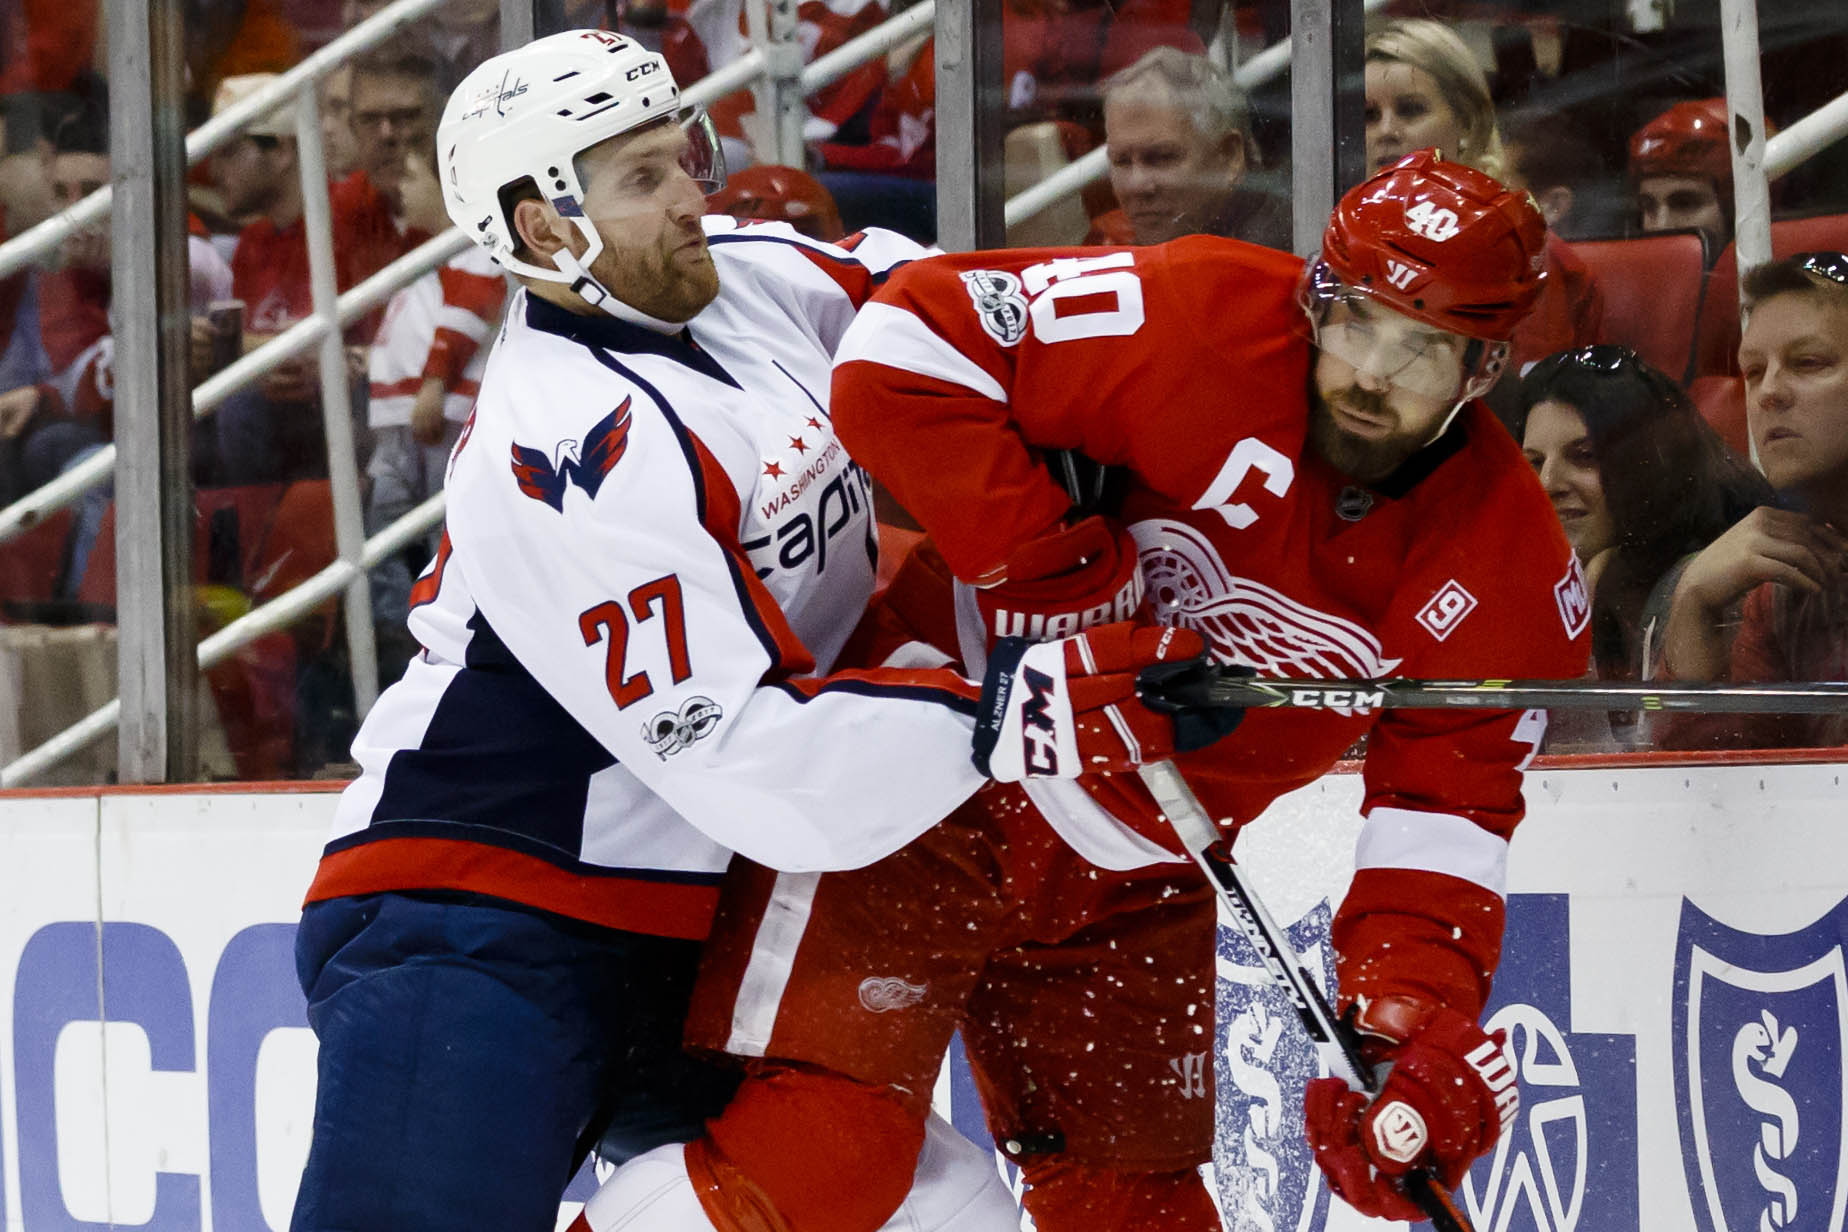 9884513-nhl-washington-capitals-at-detroit-red-wings